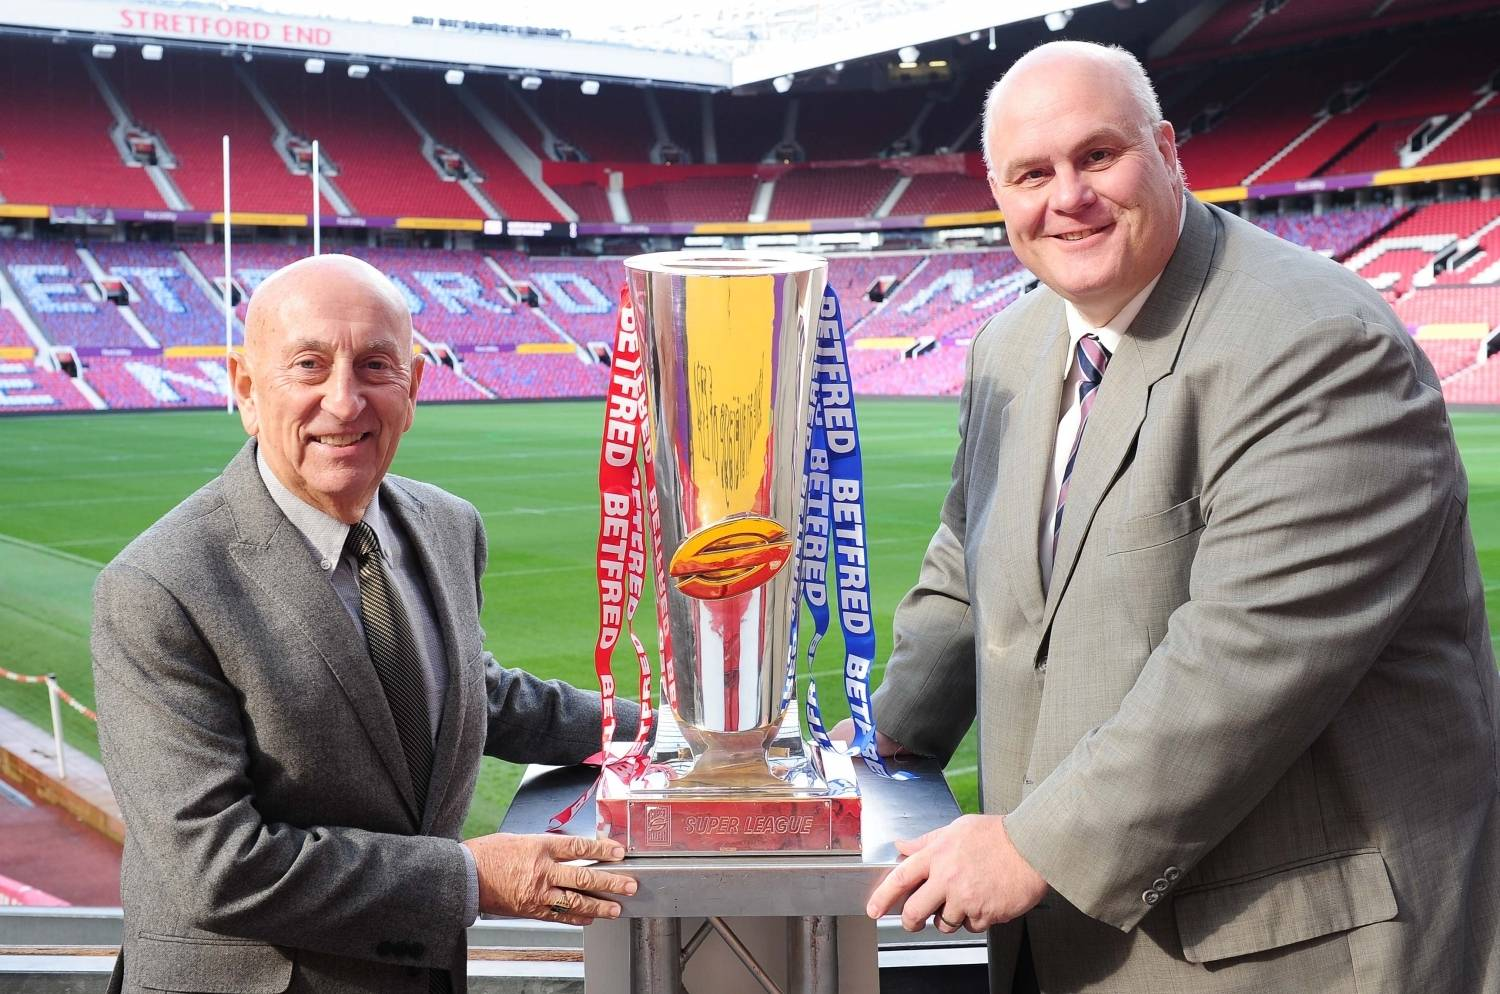 Betfred announced as new title partner for Betfred Super League